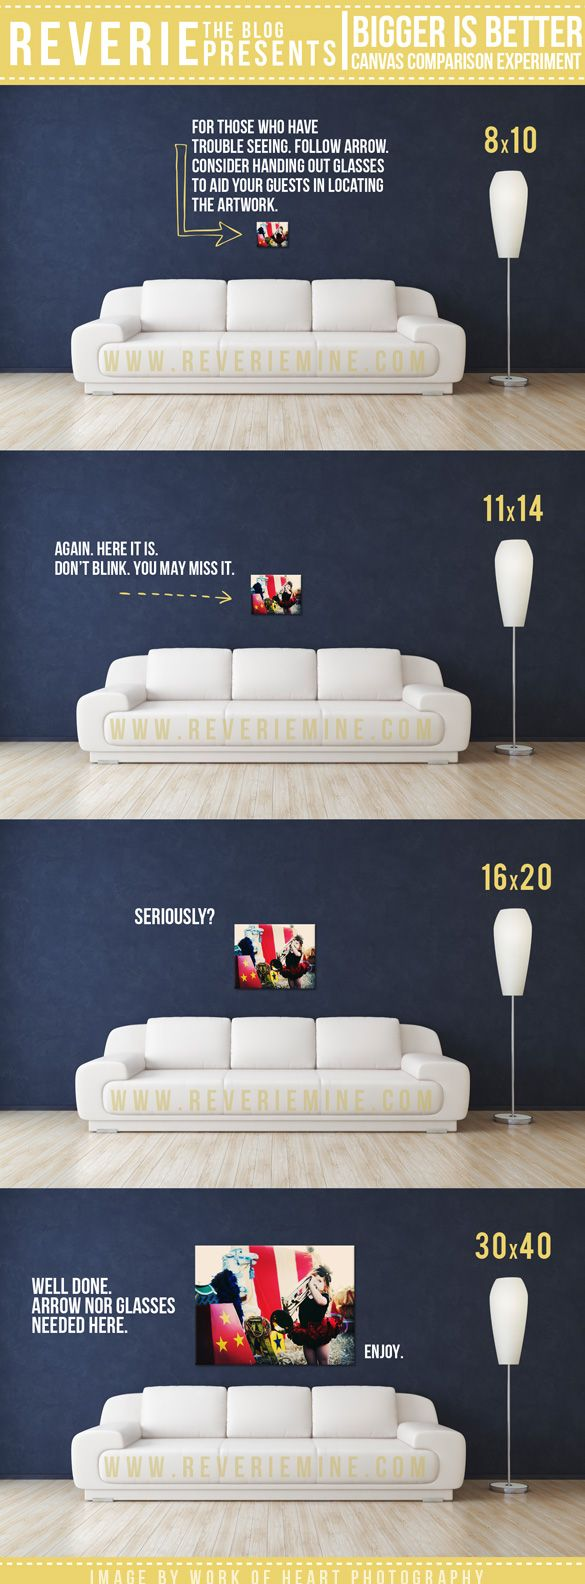 Bigger is Better. GREAT visual showing the impact of various size photographs to display on your own or client's walls.